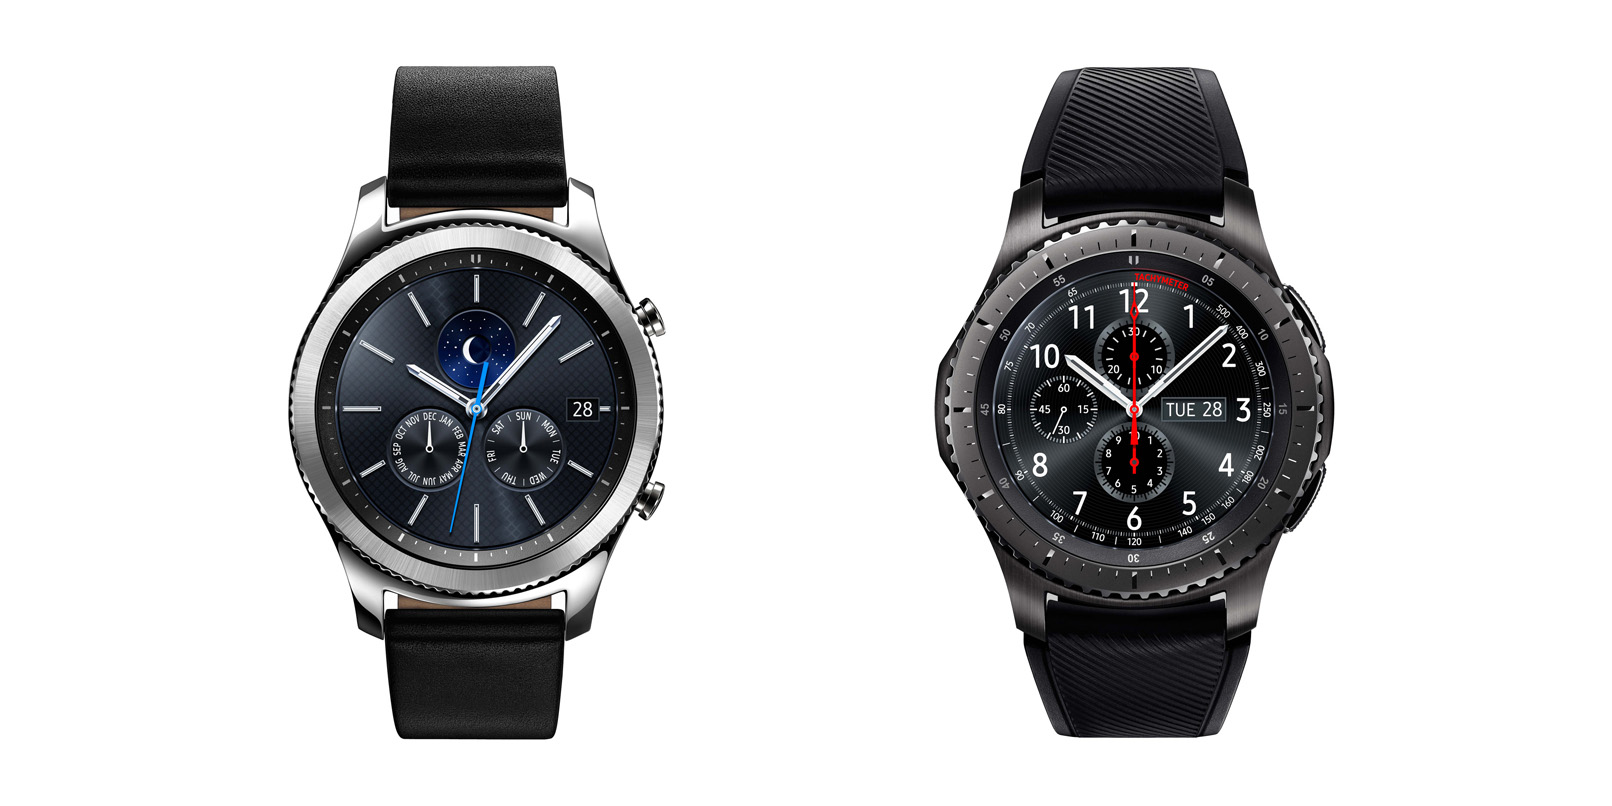 Samsung's new Gear S3 smartwatches pack GPS and LTE